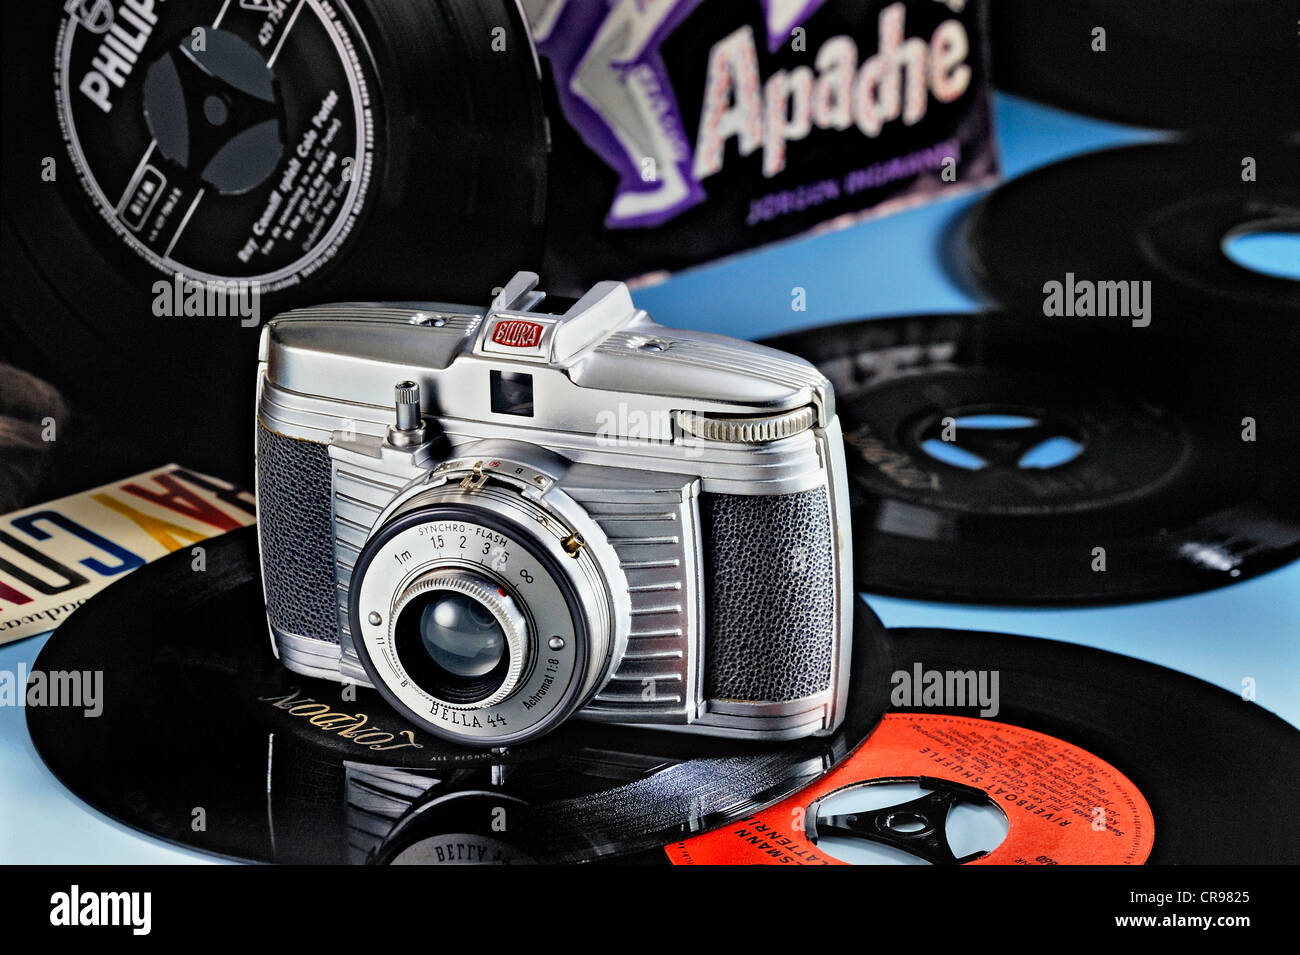 Bilora Bella 44, camera from the 60s with single records - Stock Image